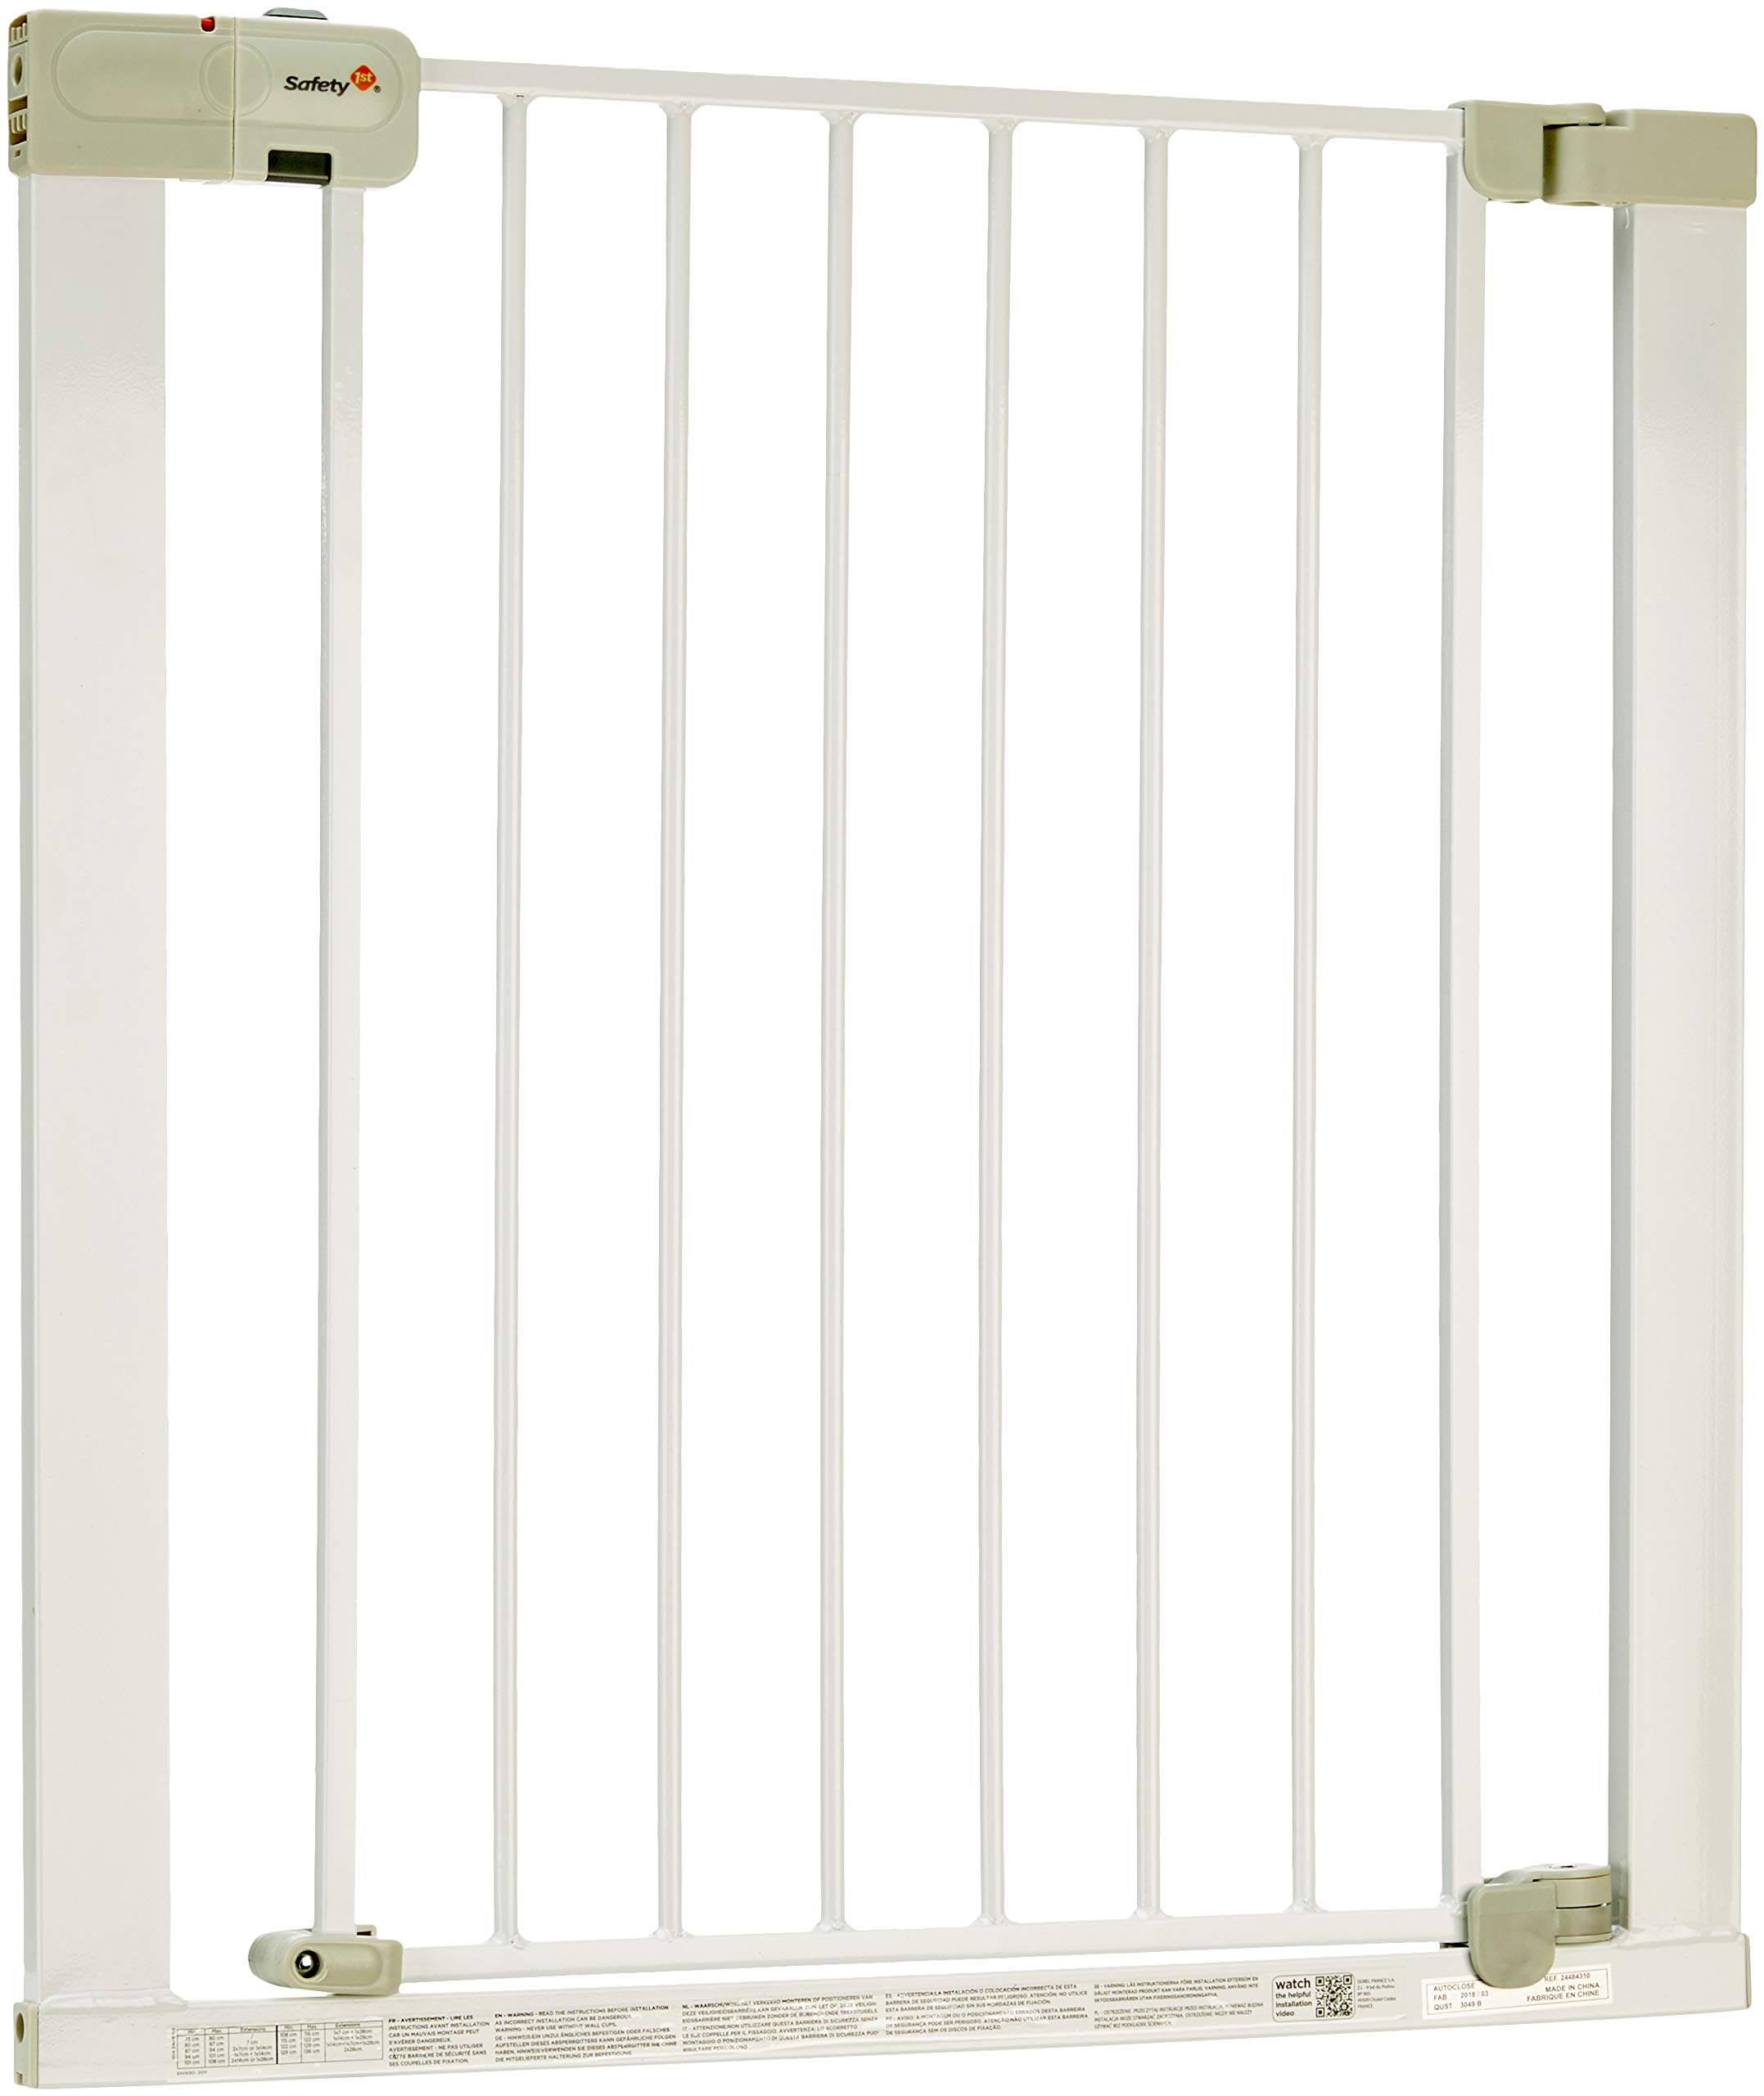 """Safety 1st Secure Tech Auto Close Metal Gate, White Safety 1st One handed opening """"true"""" auto-closing whatever the opening amplitude U-shaped frame with 4 pressure points provides solid fit and doesn't require drilling Secure tech indicator shows the gate is safely locked into place 2"""